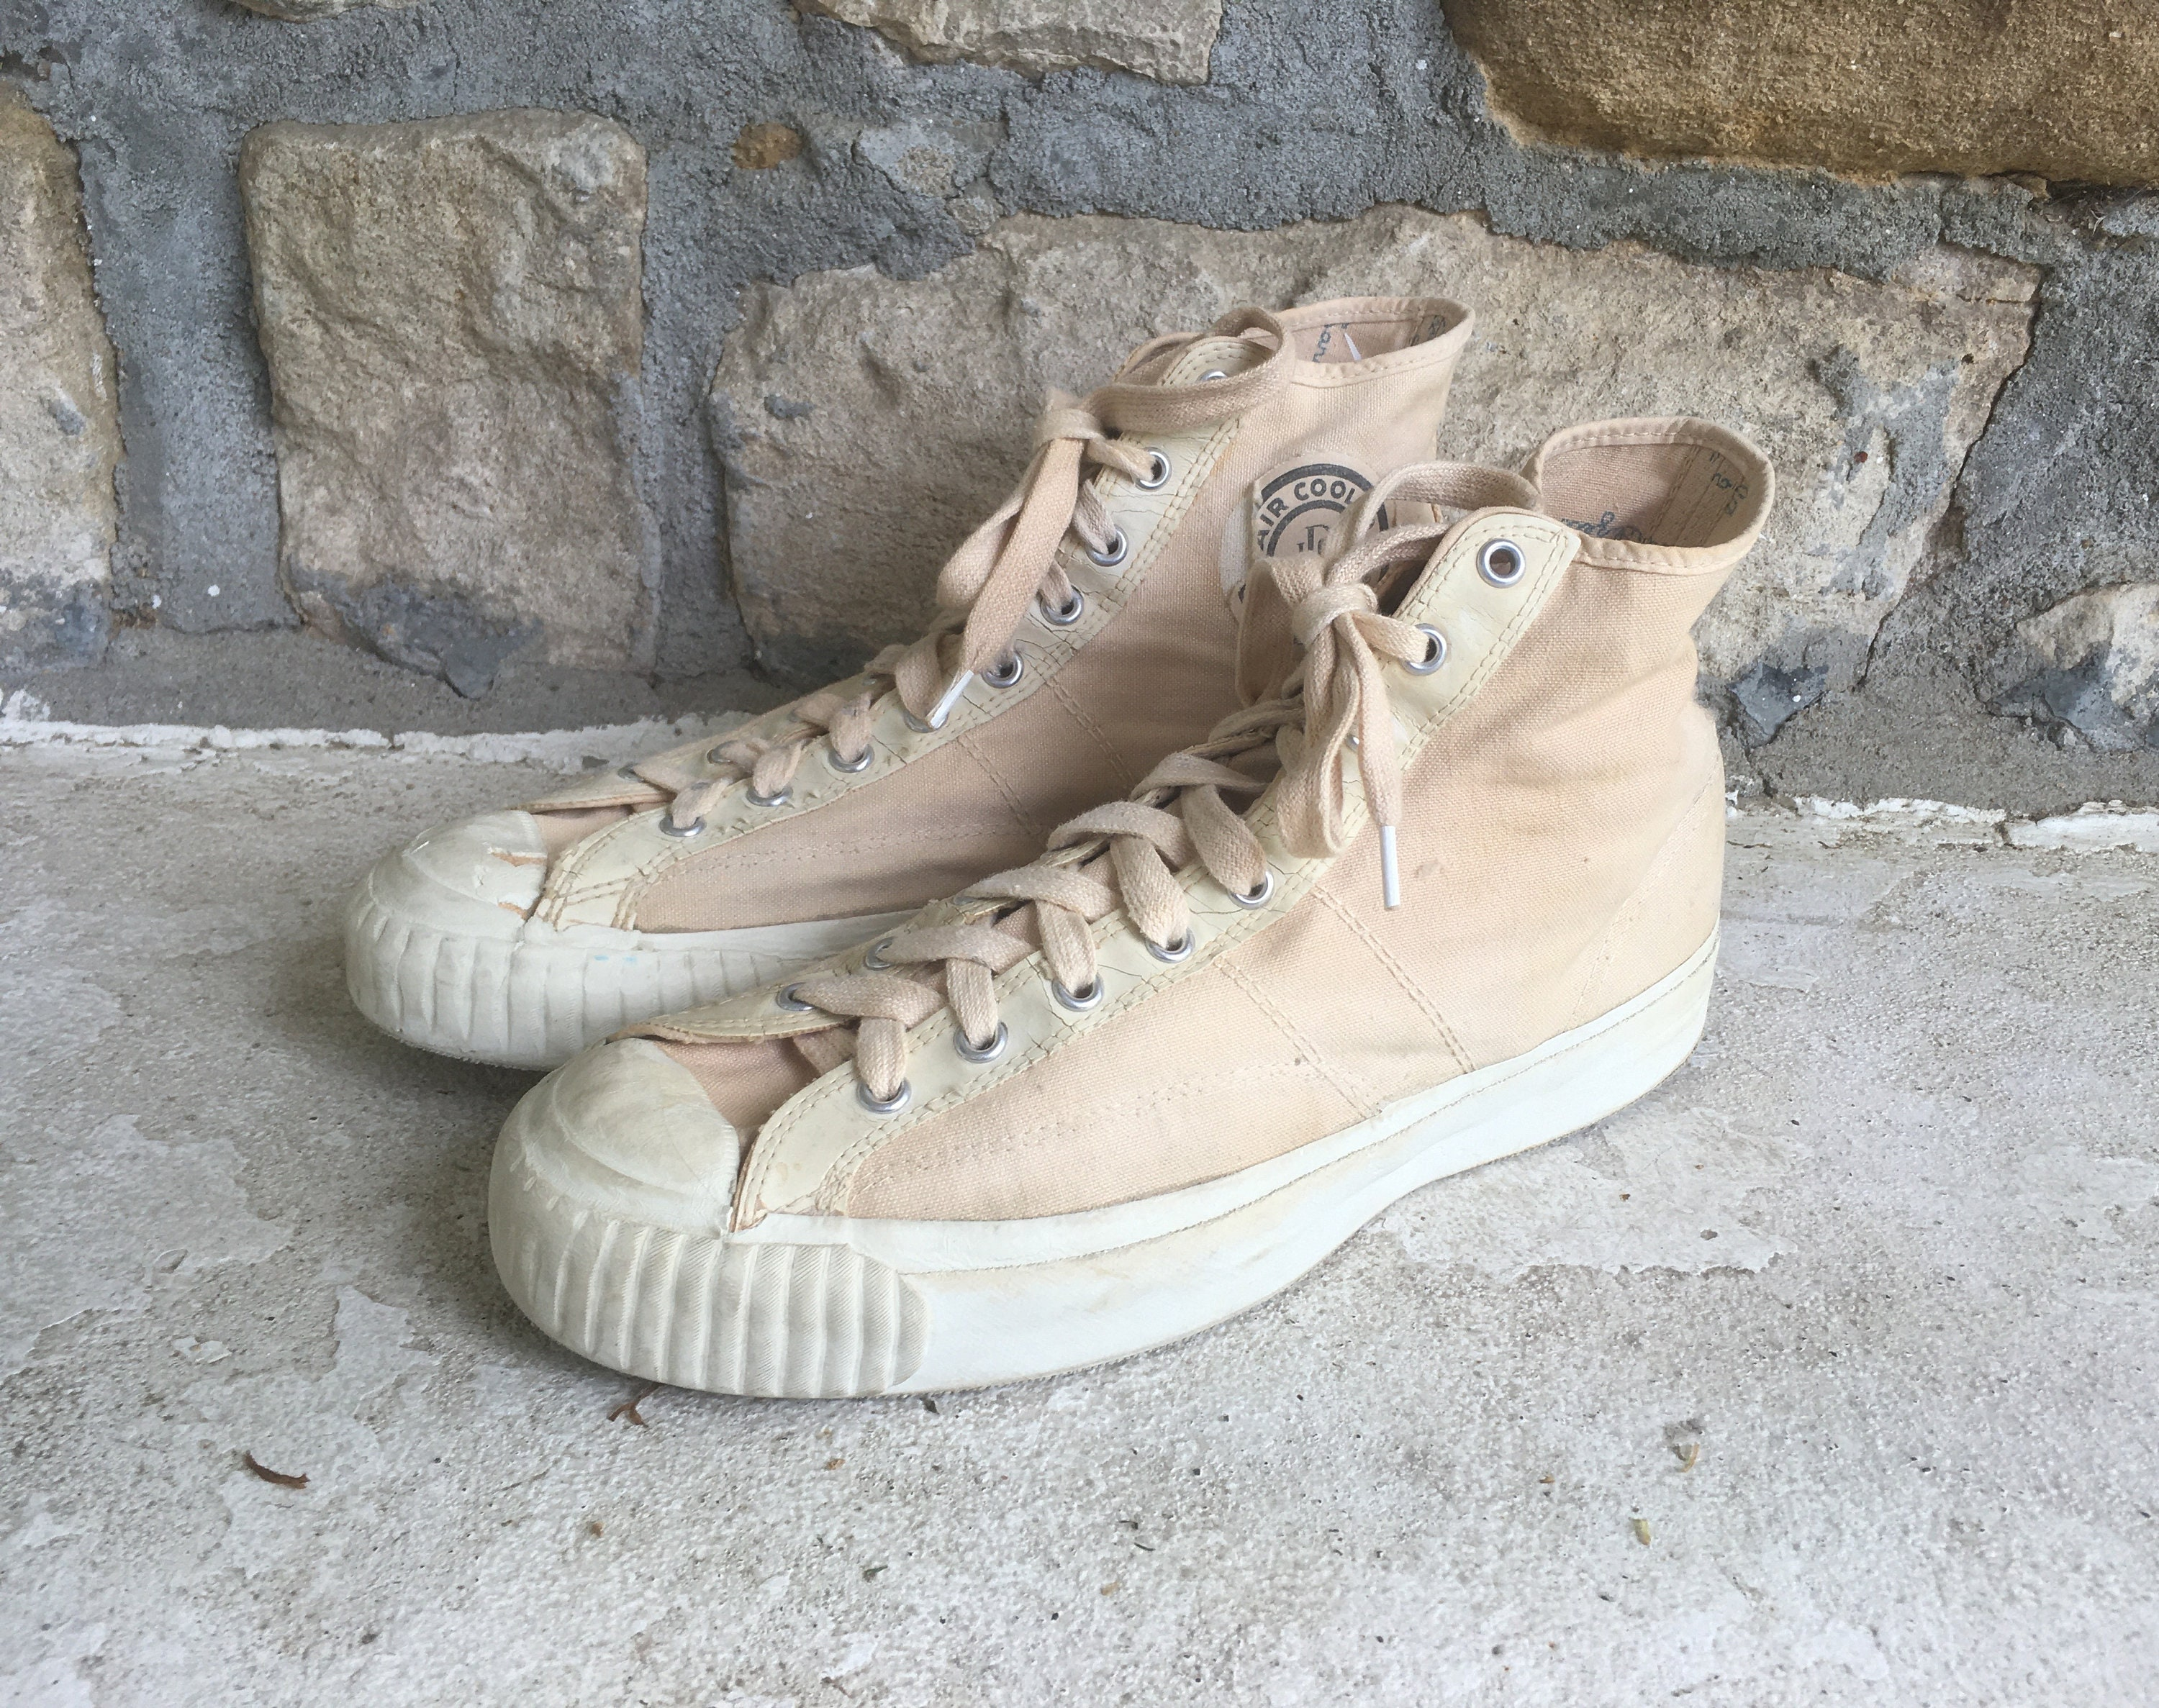 1950s Mens Hats | 50s Vintage Men's Hats Vintage 1950S 1960S Mens Jc Penneys Air Cooled White Canvas High Top Usa Made Sneakers Tennis Shoes Size 9.5 Sanitized $135.00 AT vintagedancer.com